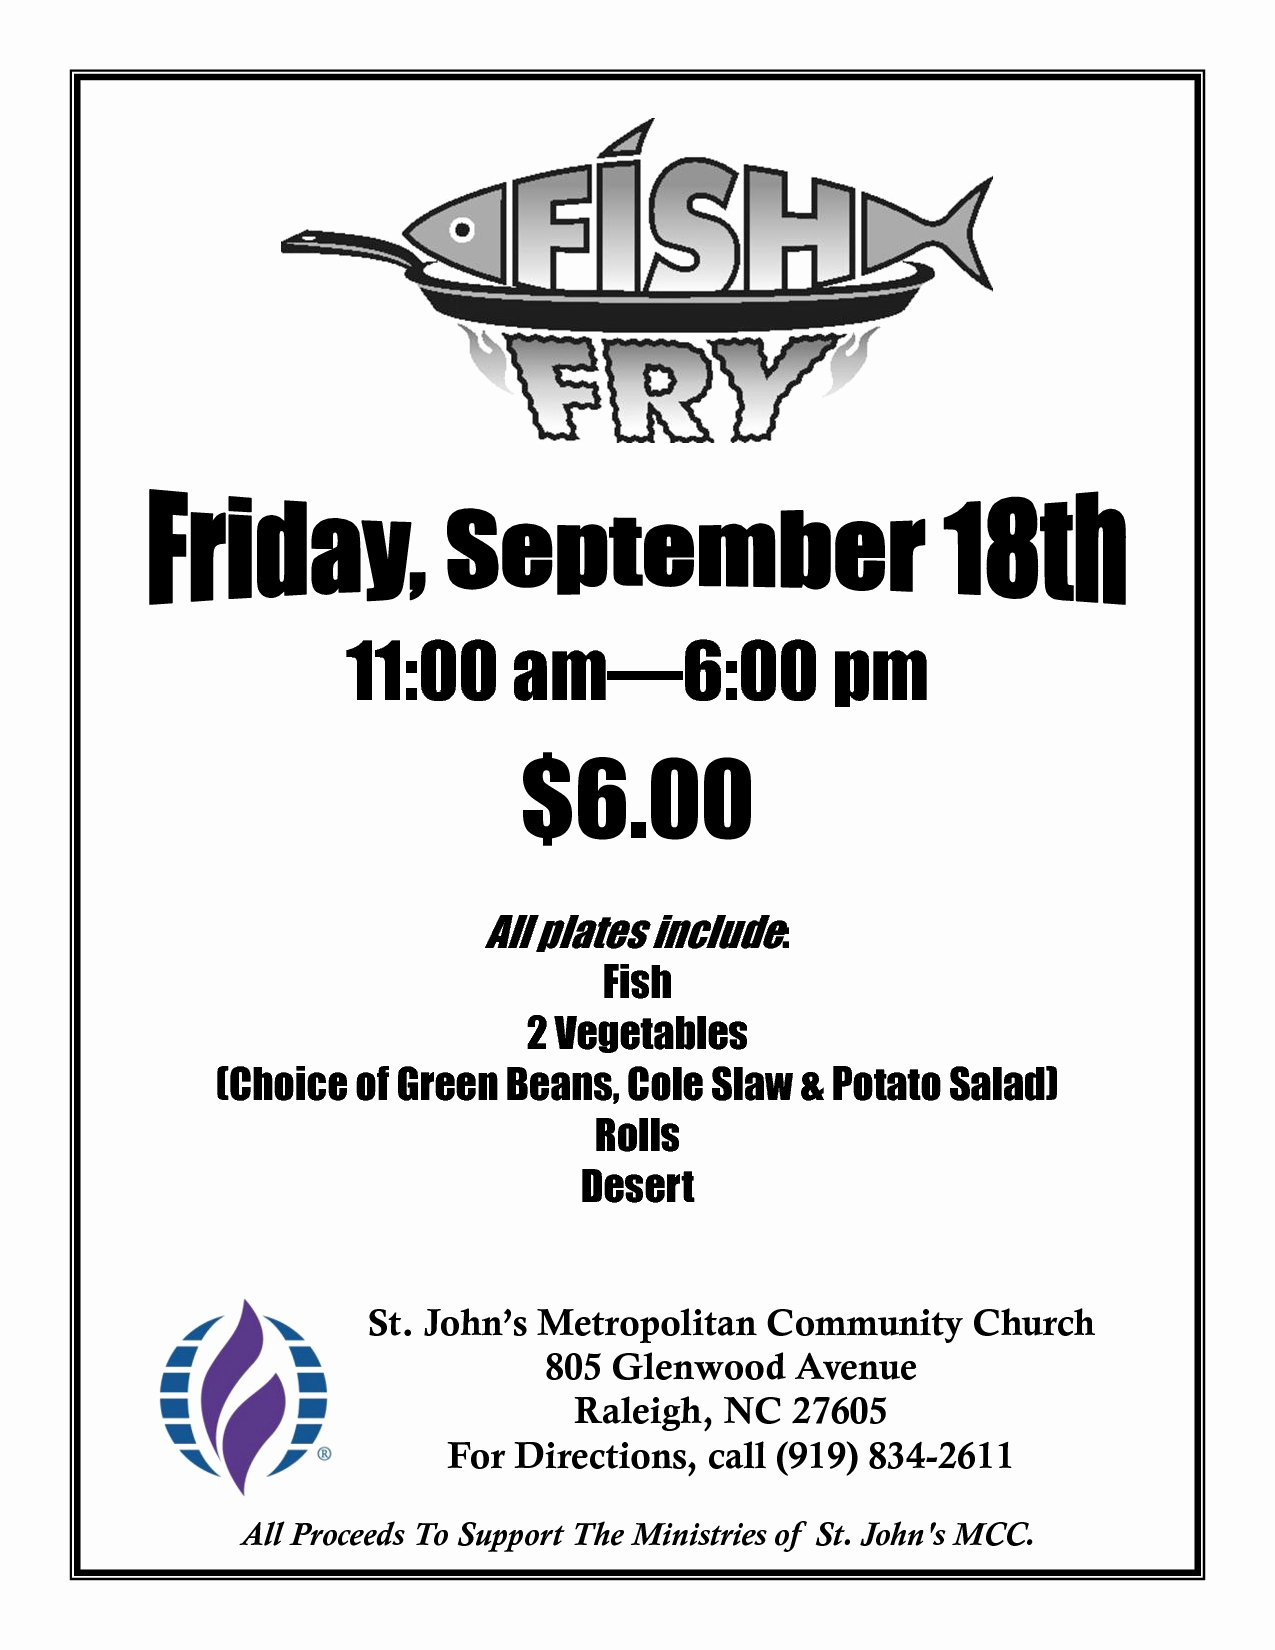 Free Fish Fry Flyer Templates Awesome Fish Fry Flyer Template